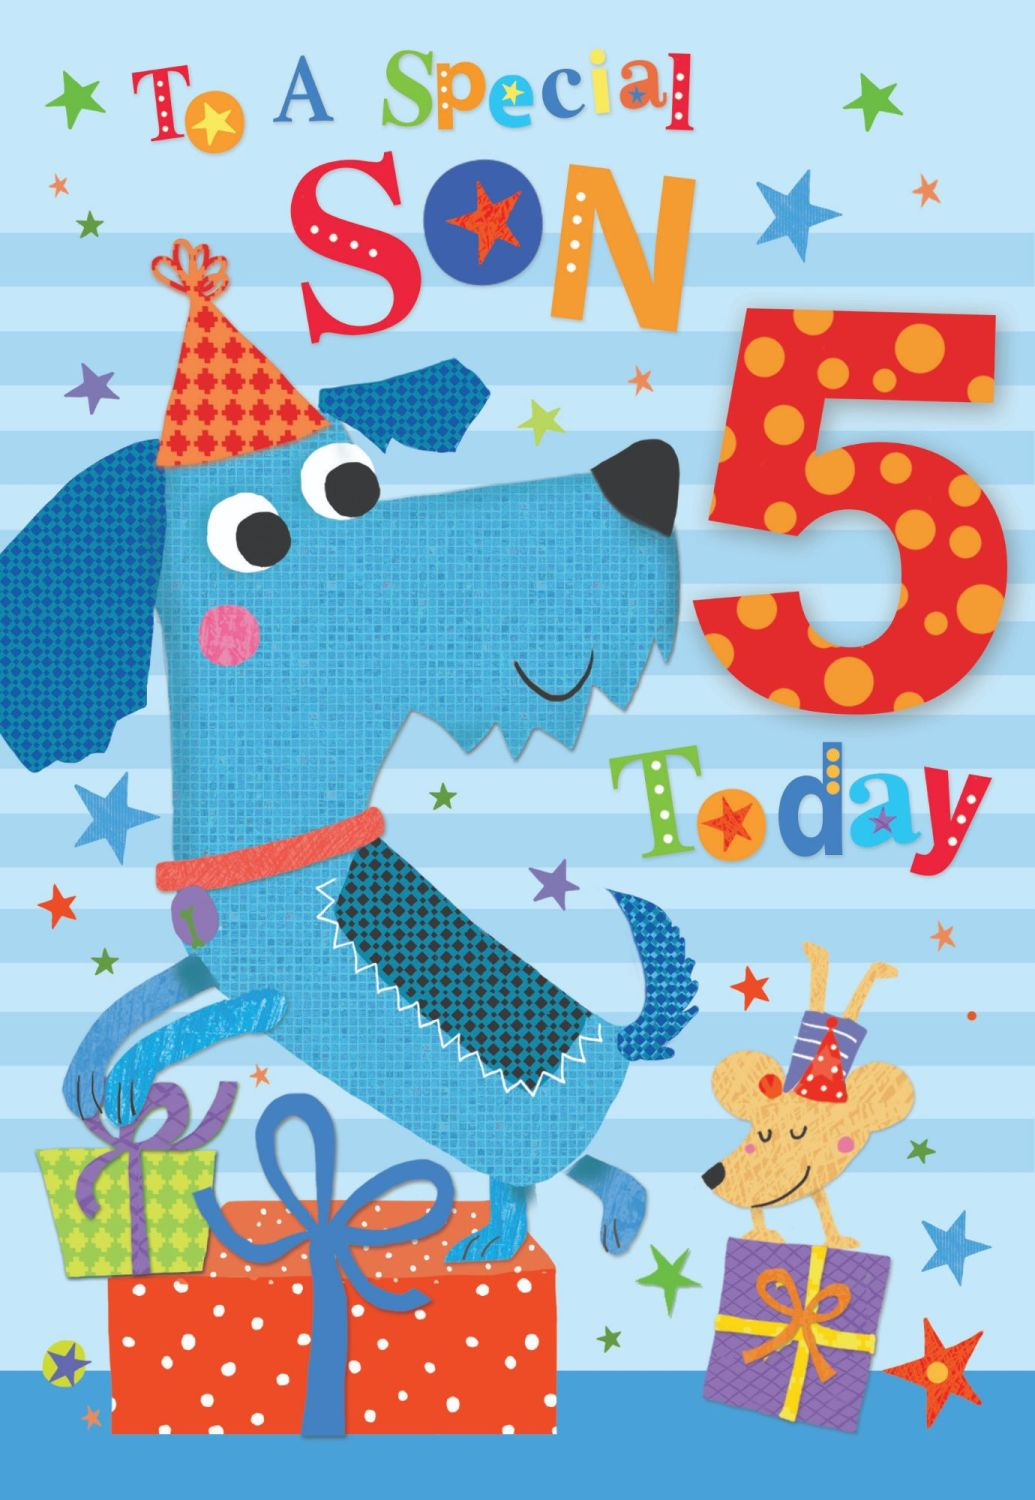 5th Birthday Cards For Son - TO A Special SON - YOU Are 5 TODAY - Special S